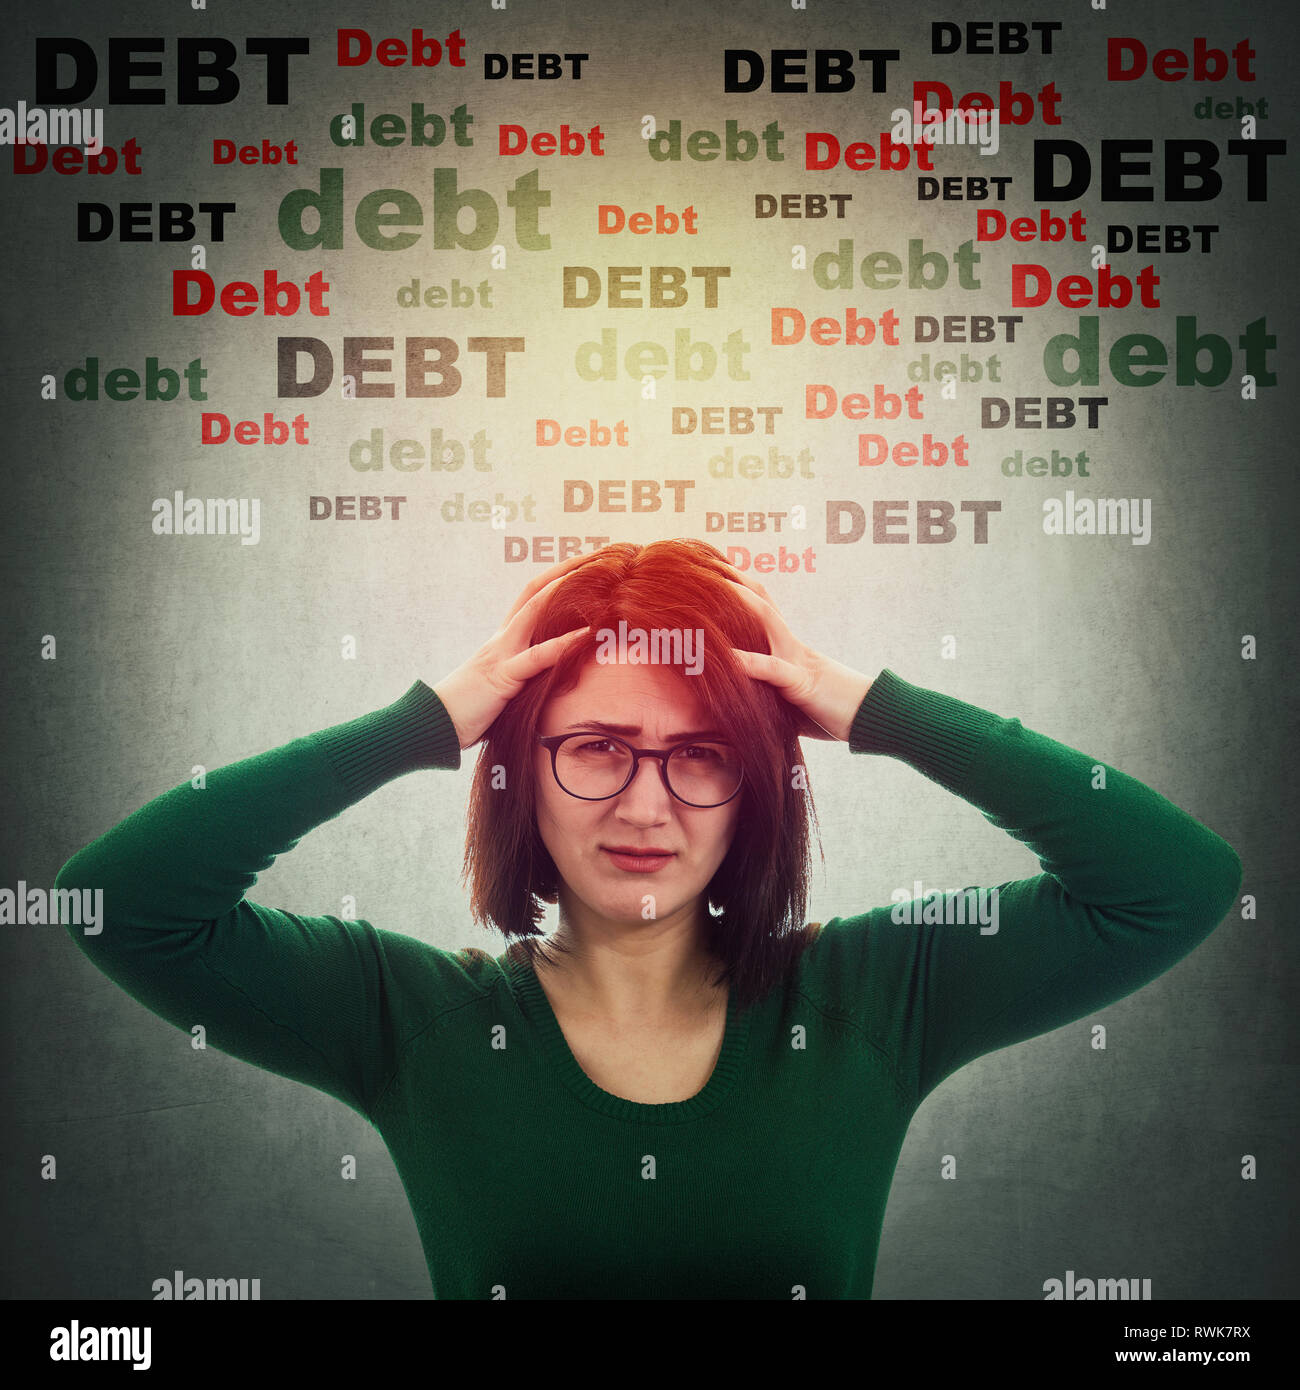 Desperate woman anxiety and headache feeling, mess in head, stress and migraine, shocked about huge debt amount, has no money. Financial problems, ove - Stock Image